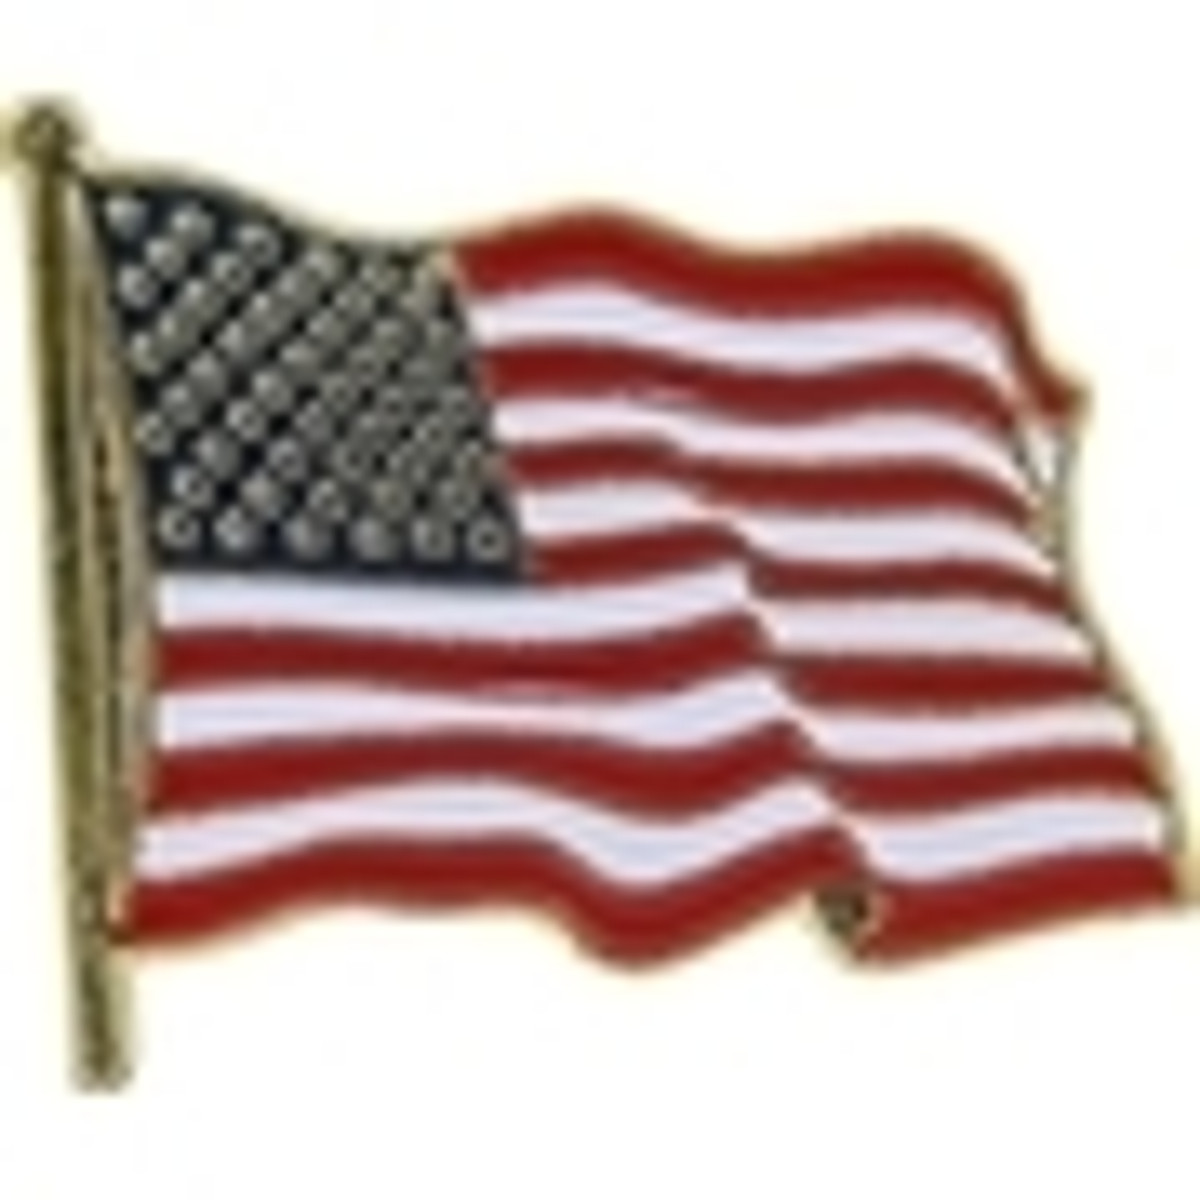 United States and Patriotic Pins